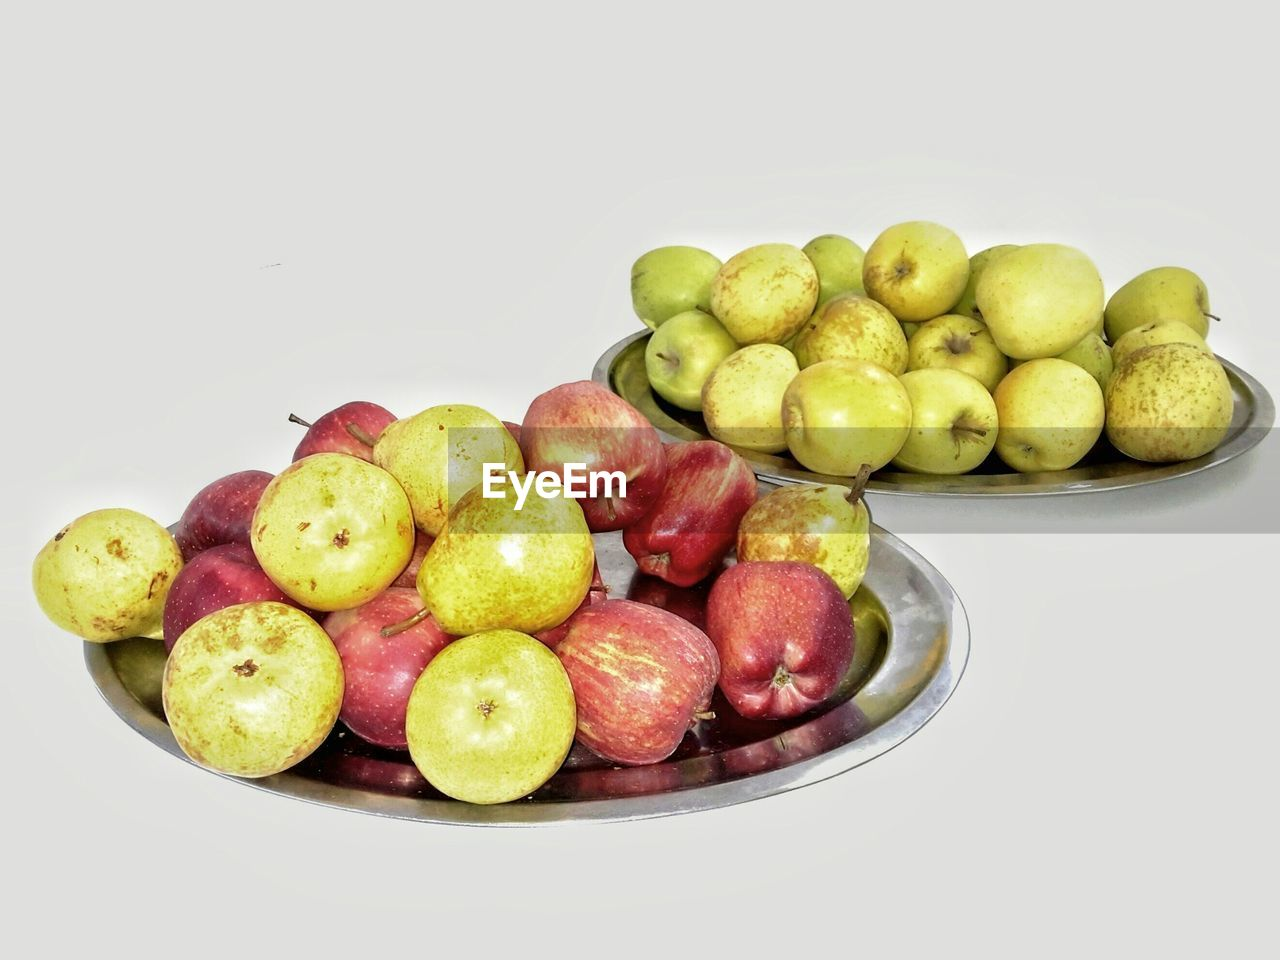 Fresh Pears And Apples On Plate Against White Background